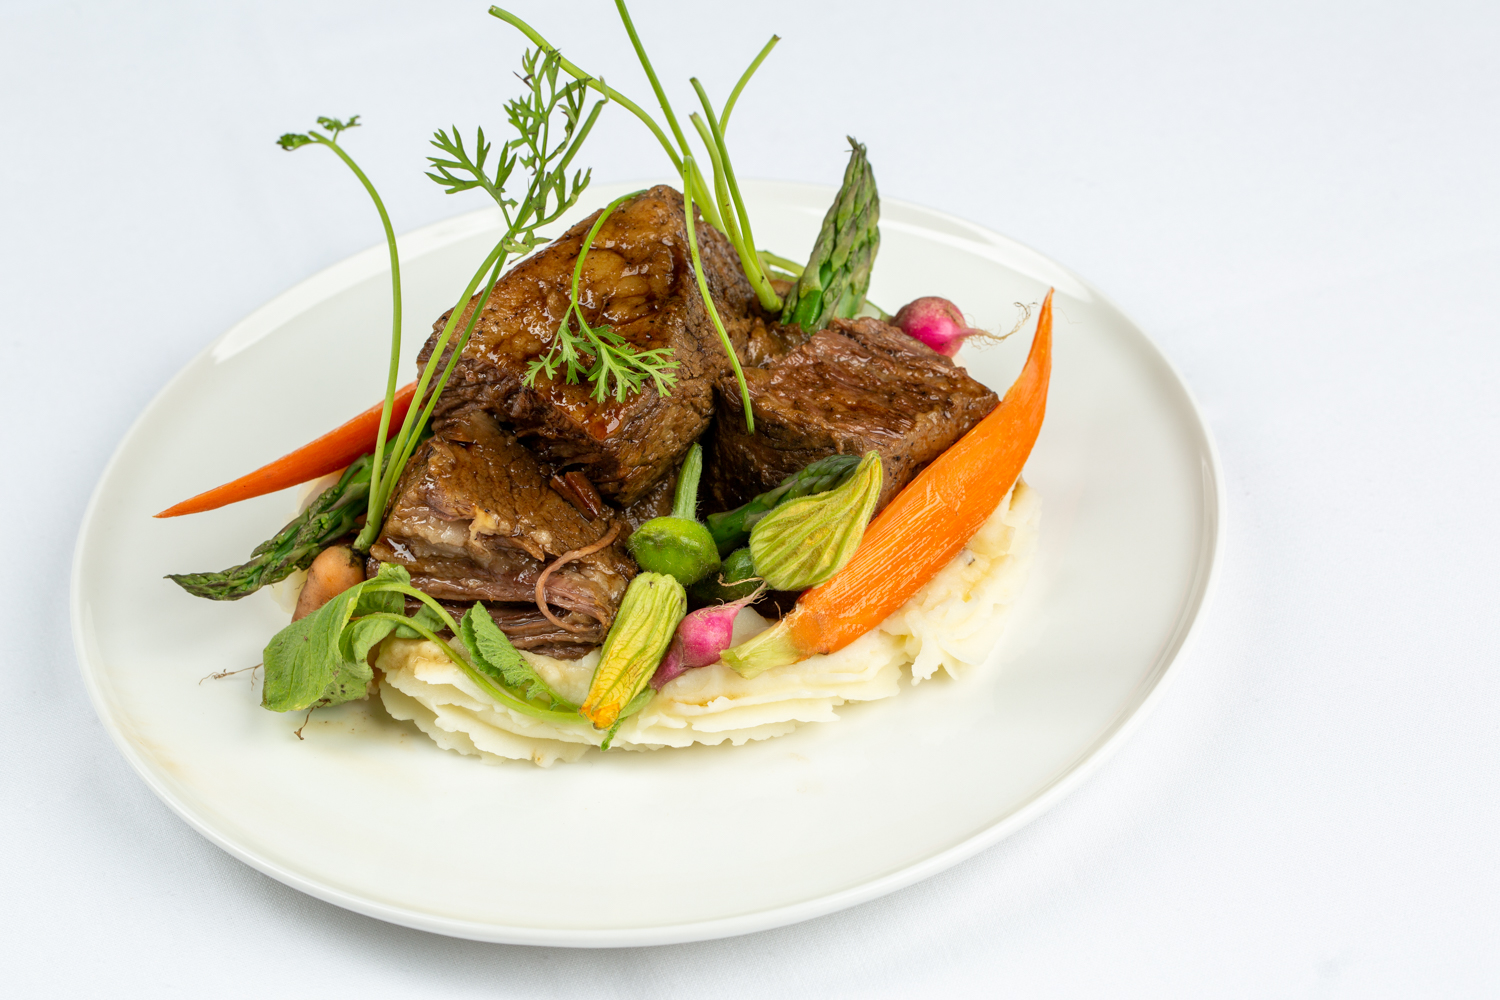 The 24 hour braised short rib available at Fiore.